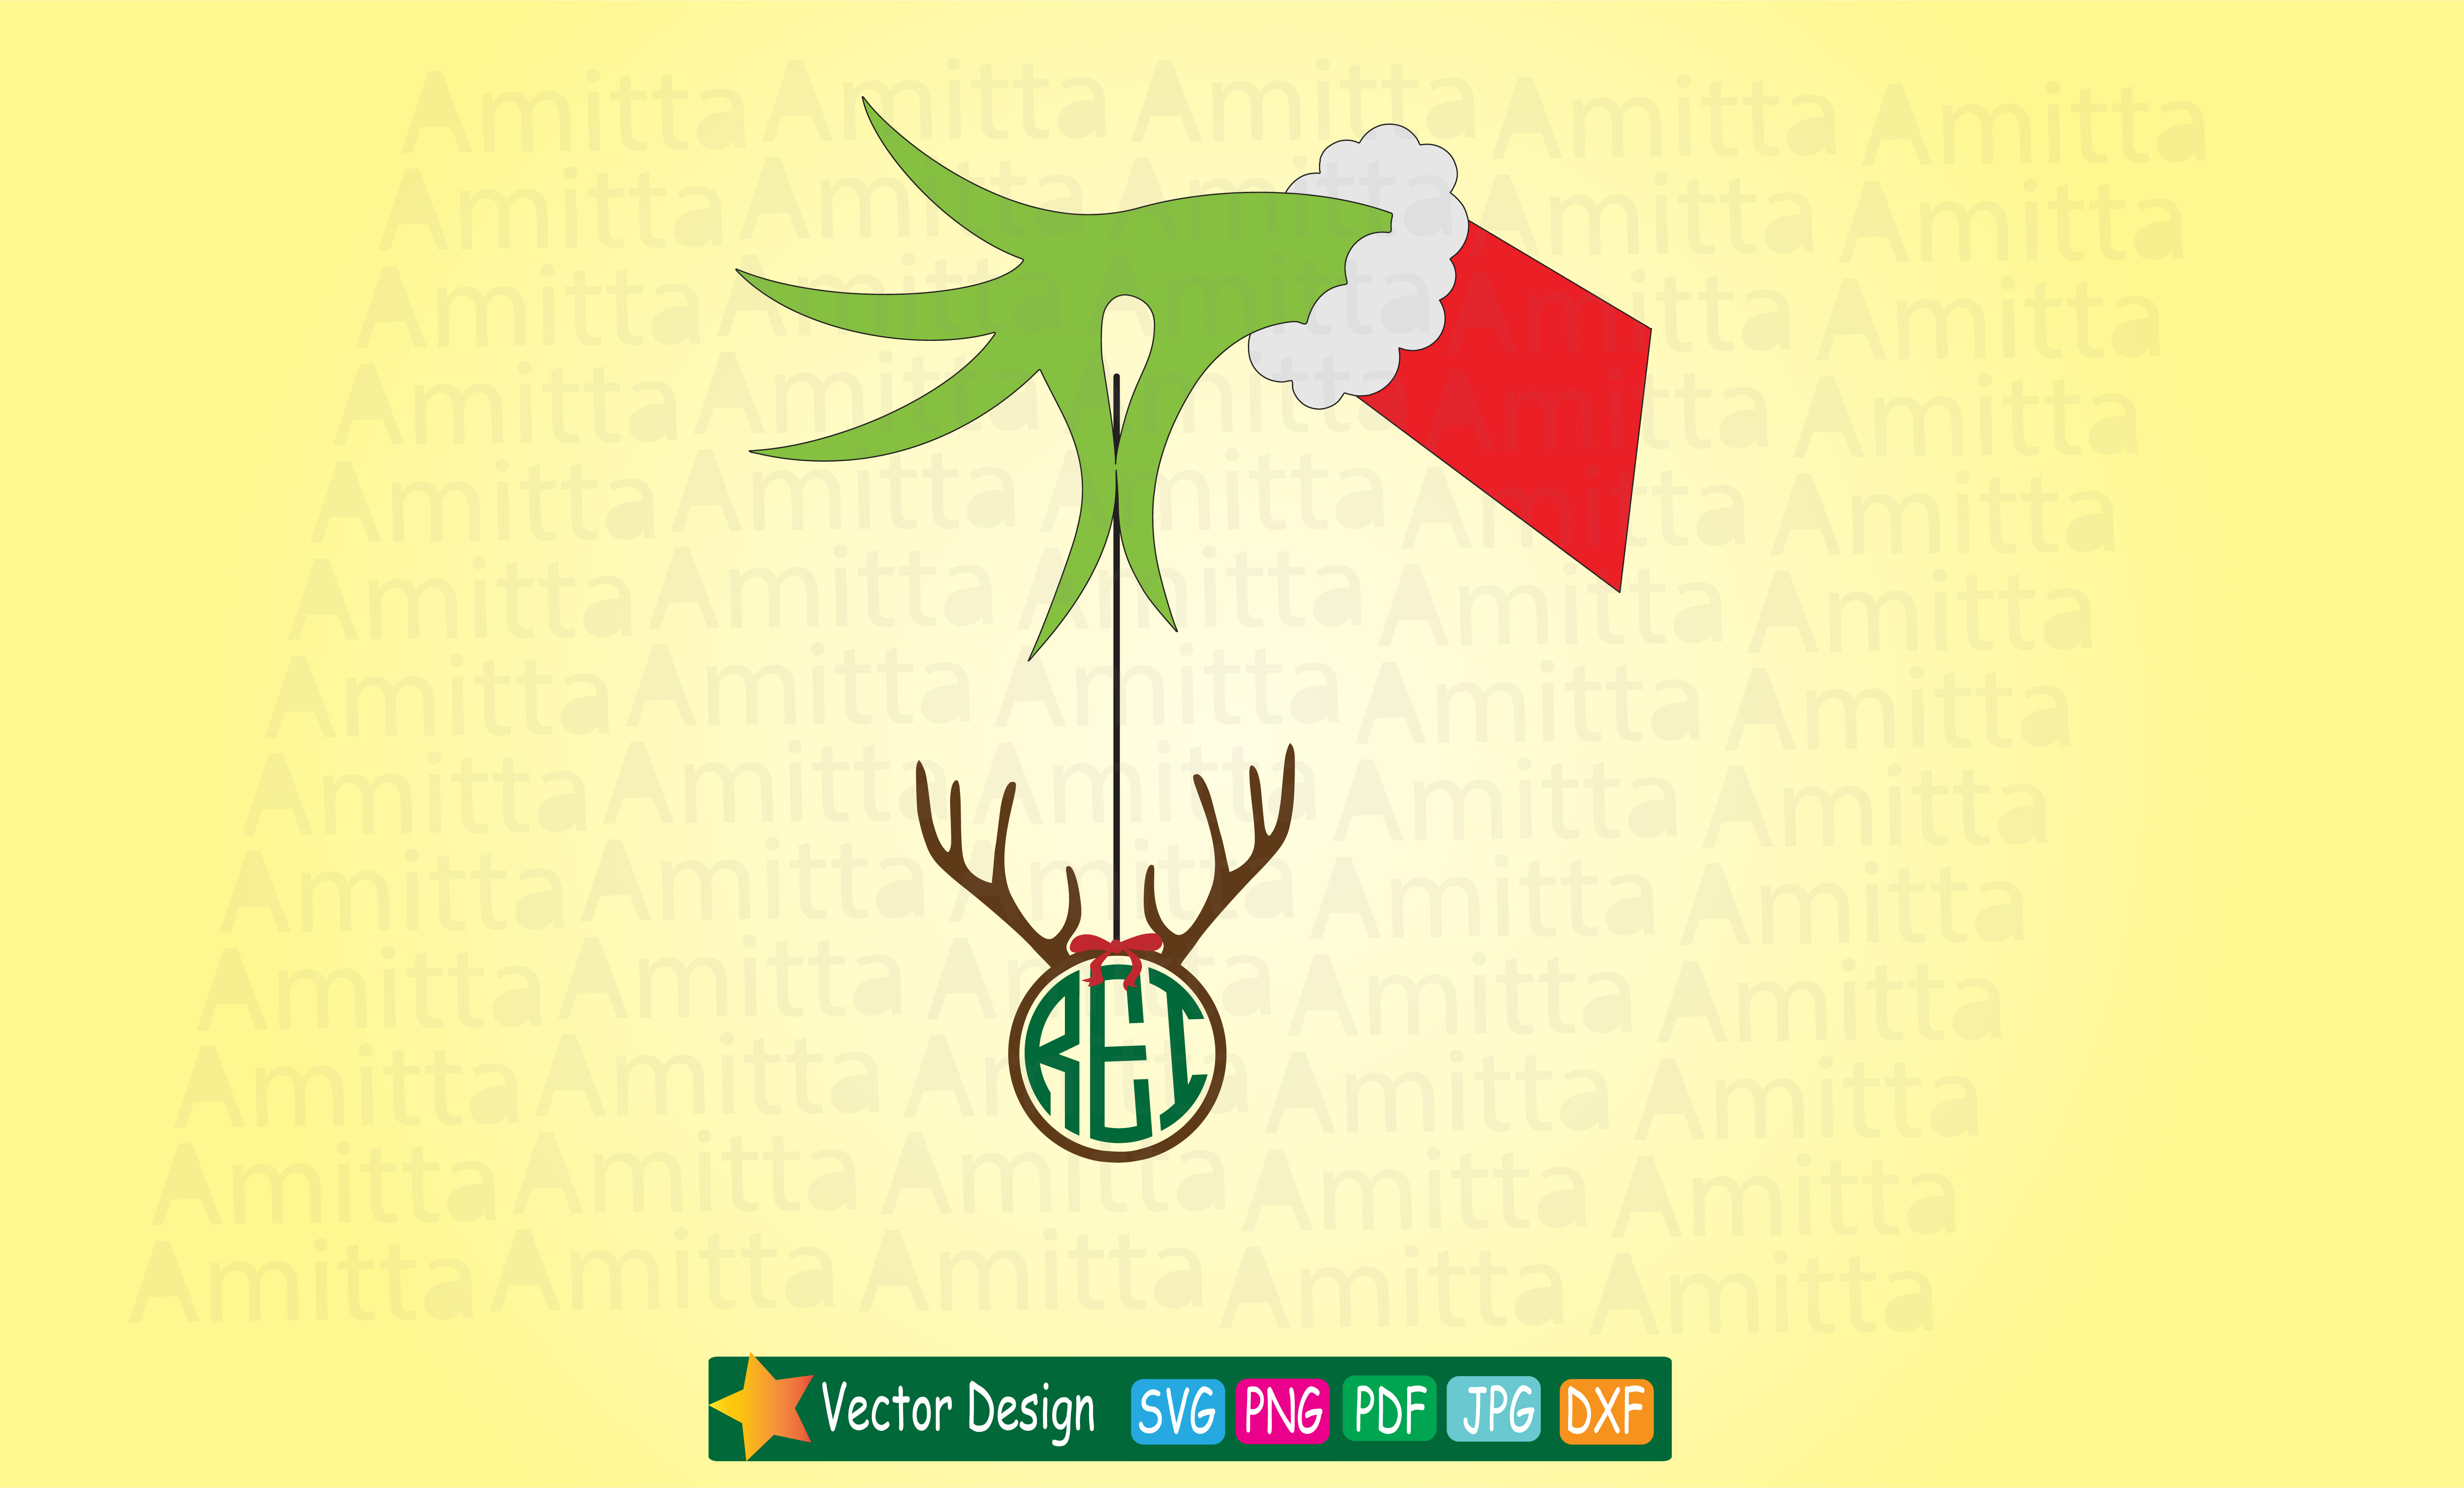 Download Free Monogram Reindeer Graphic By Amitta Creative Fabrica for Cricut Explore, Silhouette and other cutting machines.